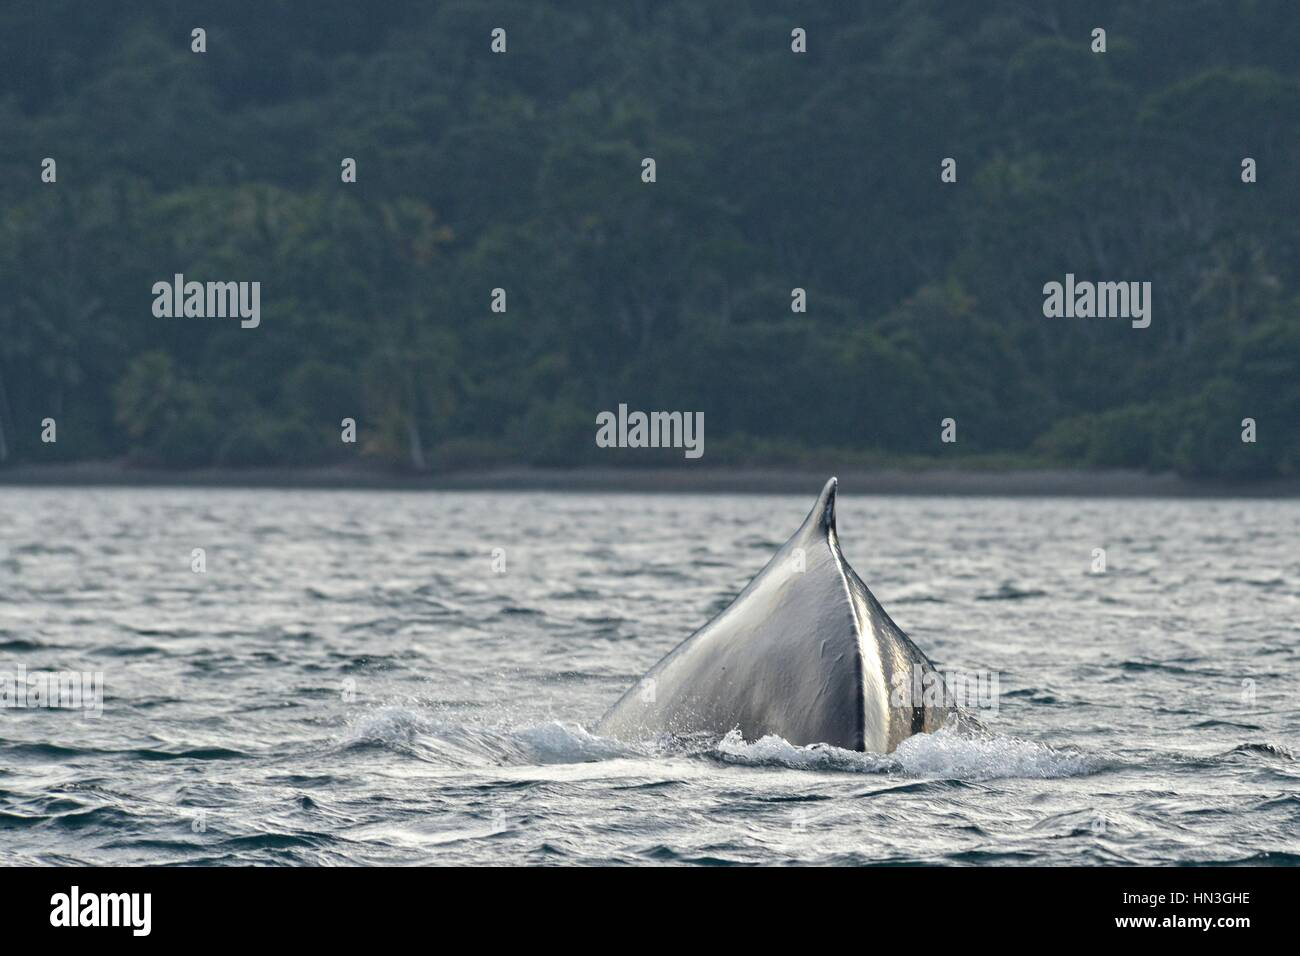 A humpback whale, Megaptera novaeangliae, in the Pacific Ocean off Gorgona Island. Stock Photo